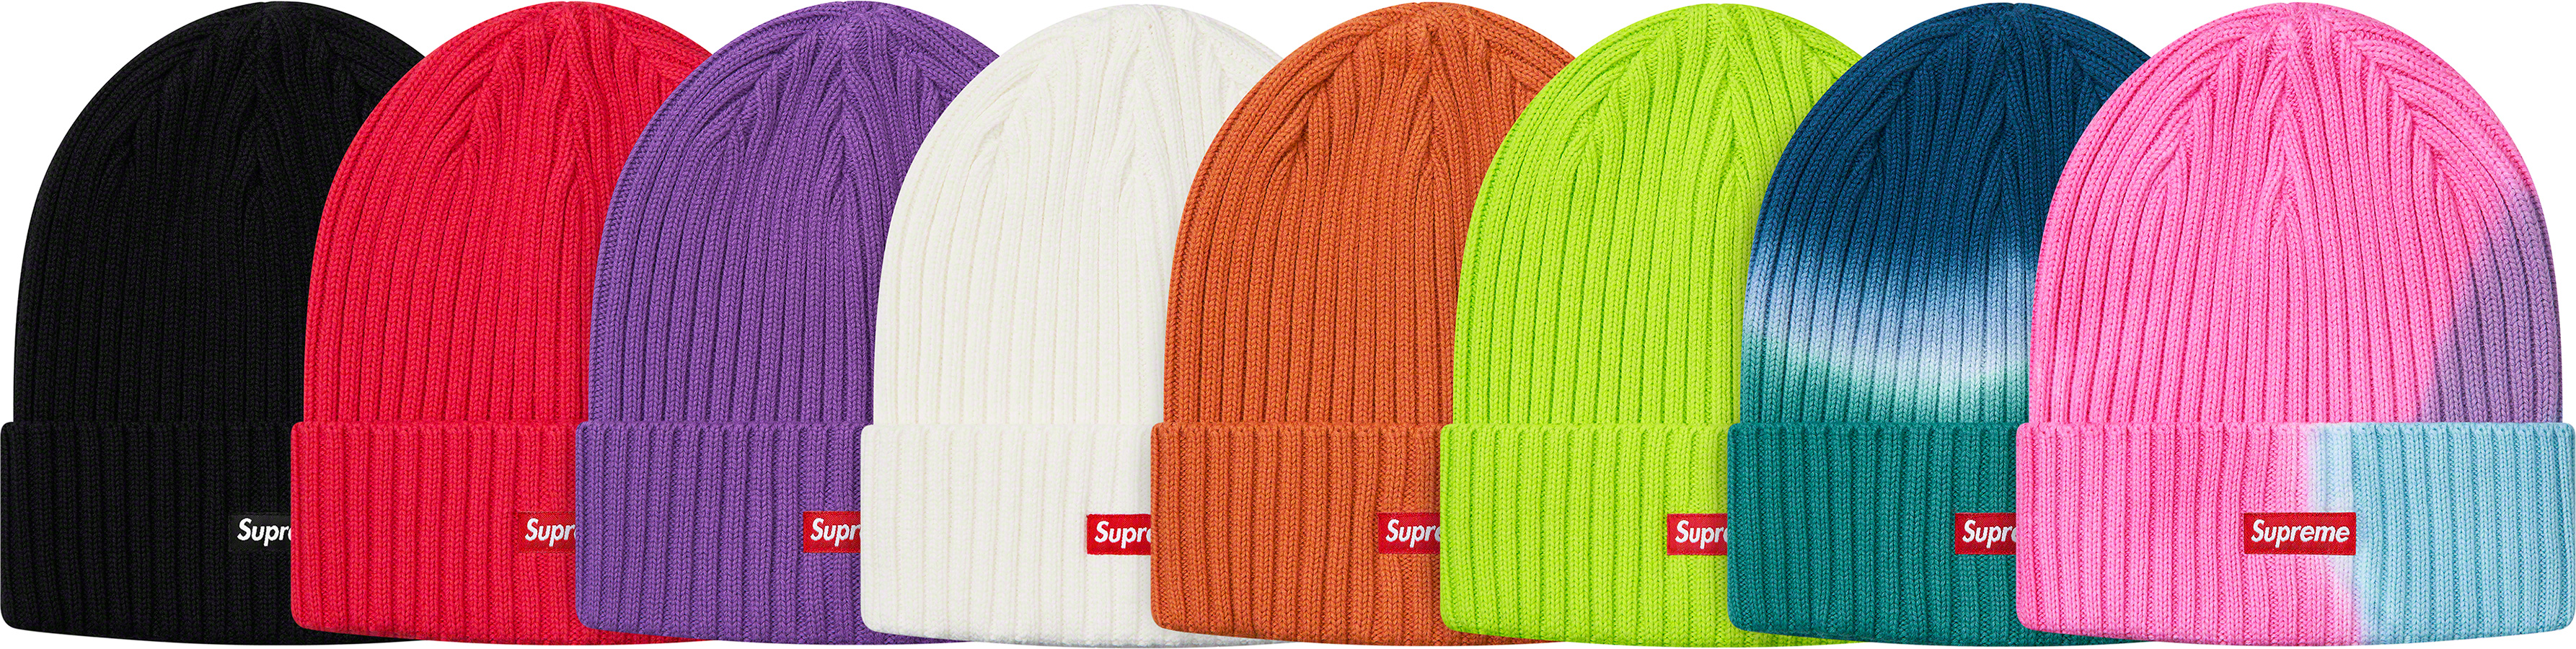 4949cade5 Details Supreme Overdyed Beanie - Supreme Community